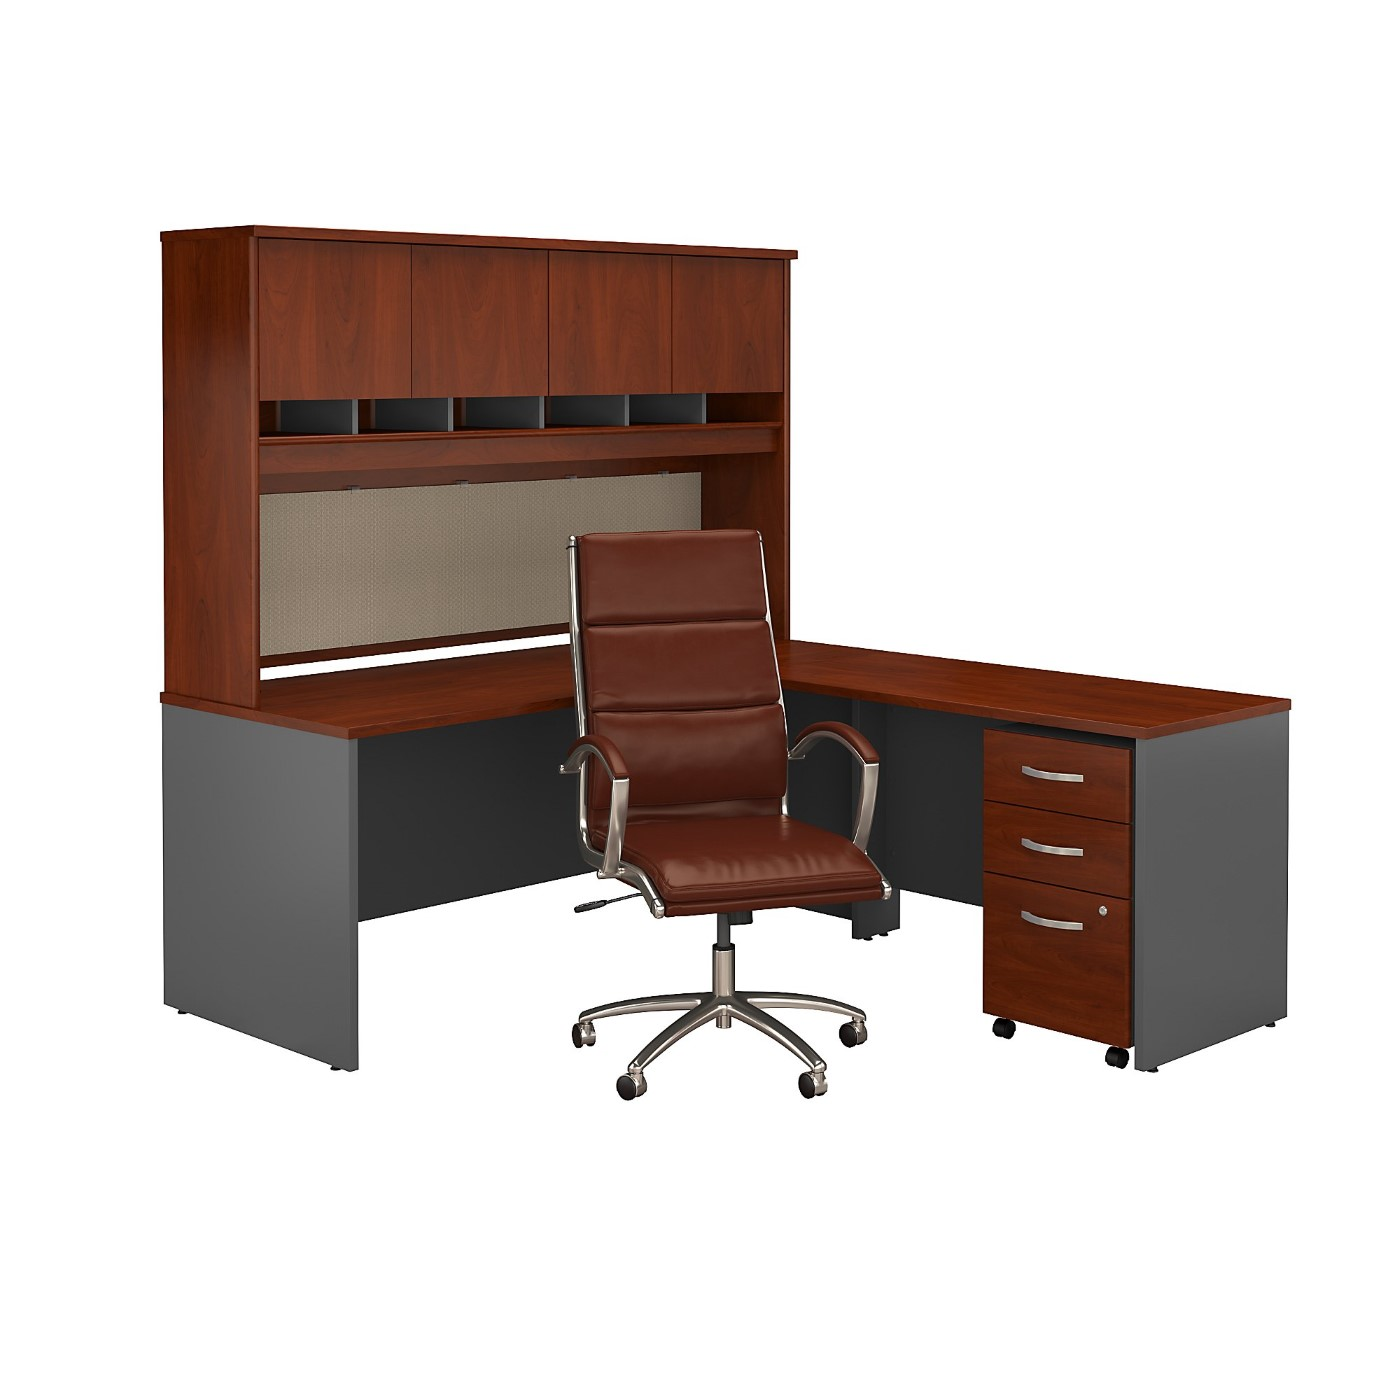 BUSH BUSINESS FURNITURE SERIES C L SHAPED DESK WITH HUTCH, MOBILE FILE CABINET AND HIGH BACK OFFICE CHAIR. FREE SHIPPING SALE DEDUCT 10% MORE ENTER '10percent' IN COUPON CODE BOX WHILE CHECKING OUT.